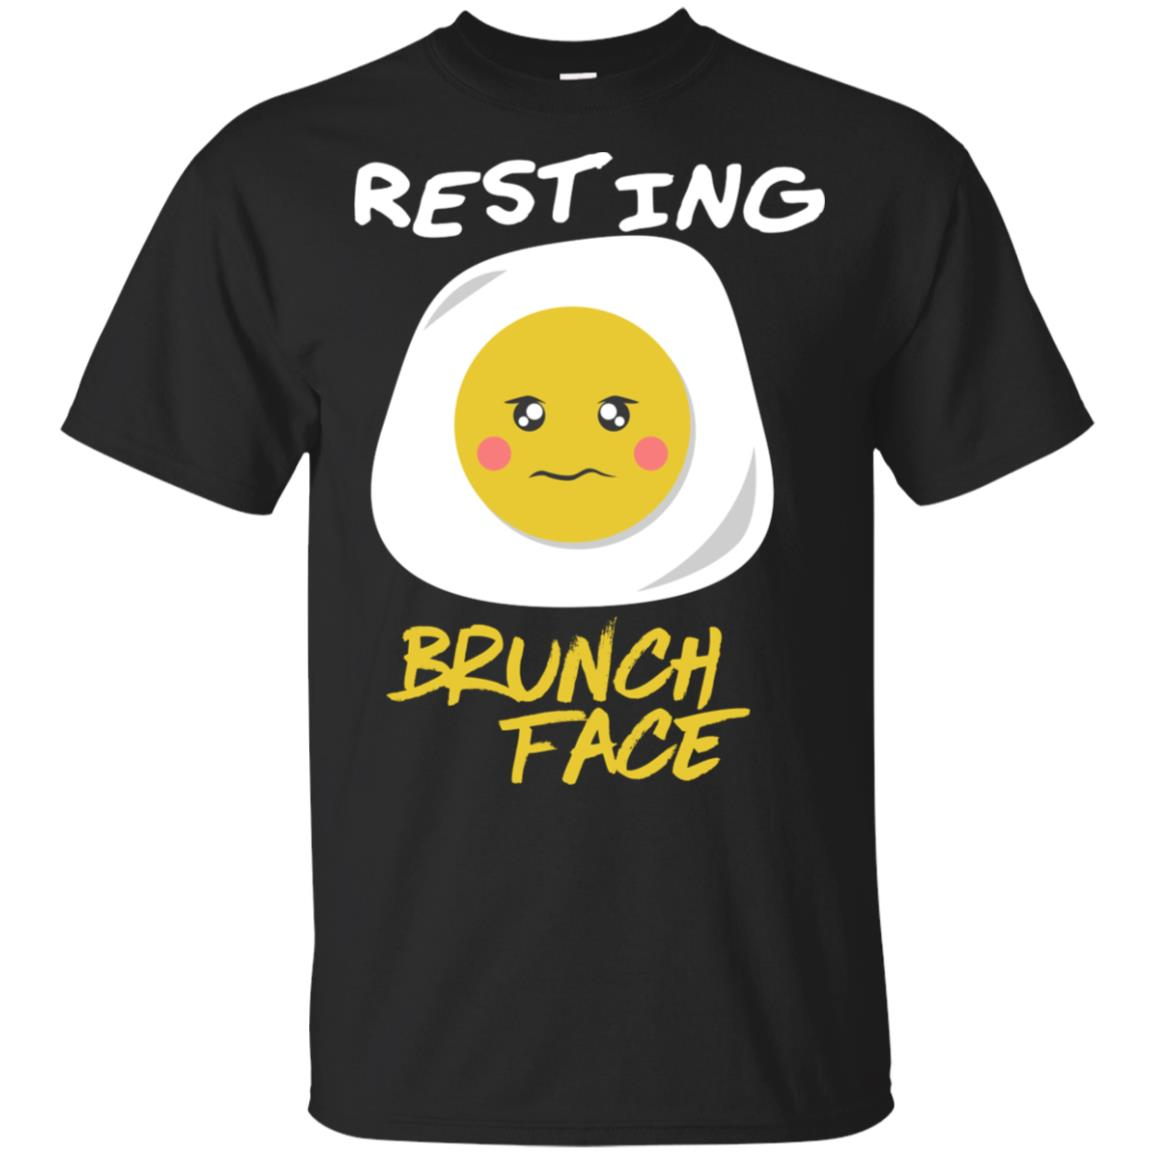 Resting Brunch Face Cute Egg Funny Breakfast Lunch Pun Tee Unisex Short Sleeve